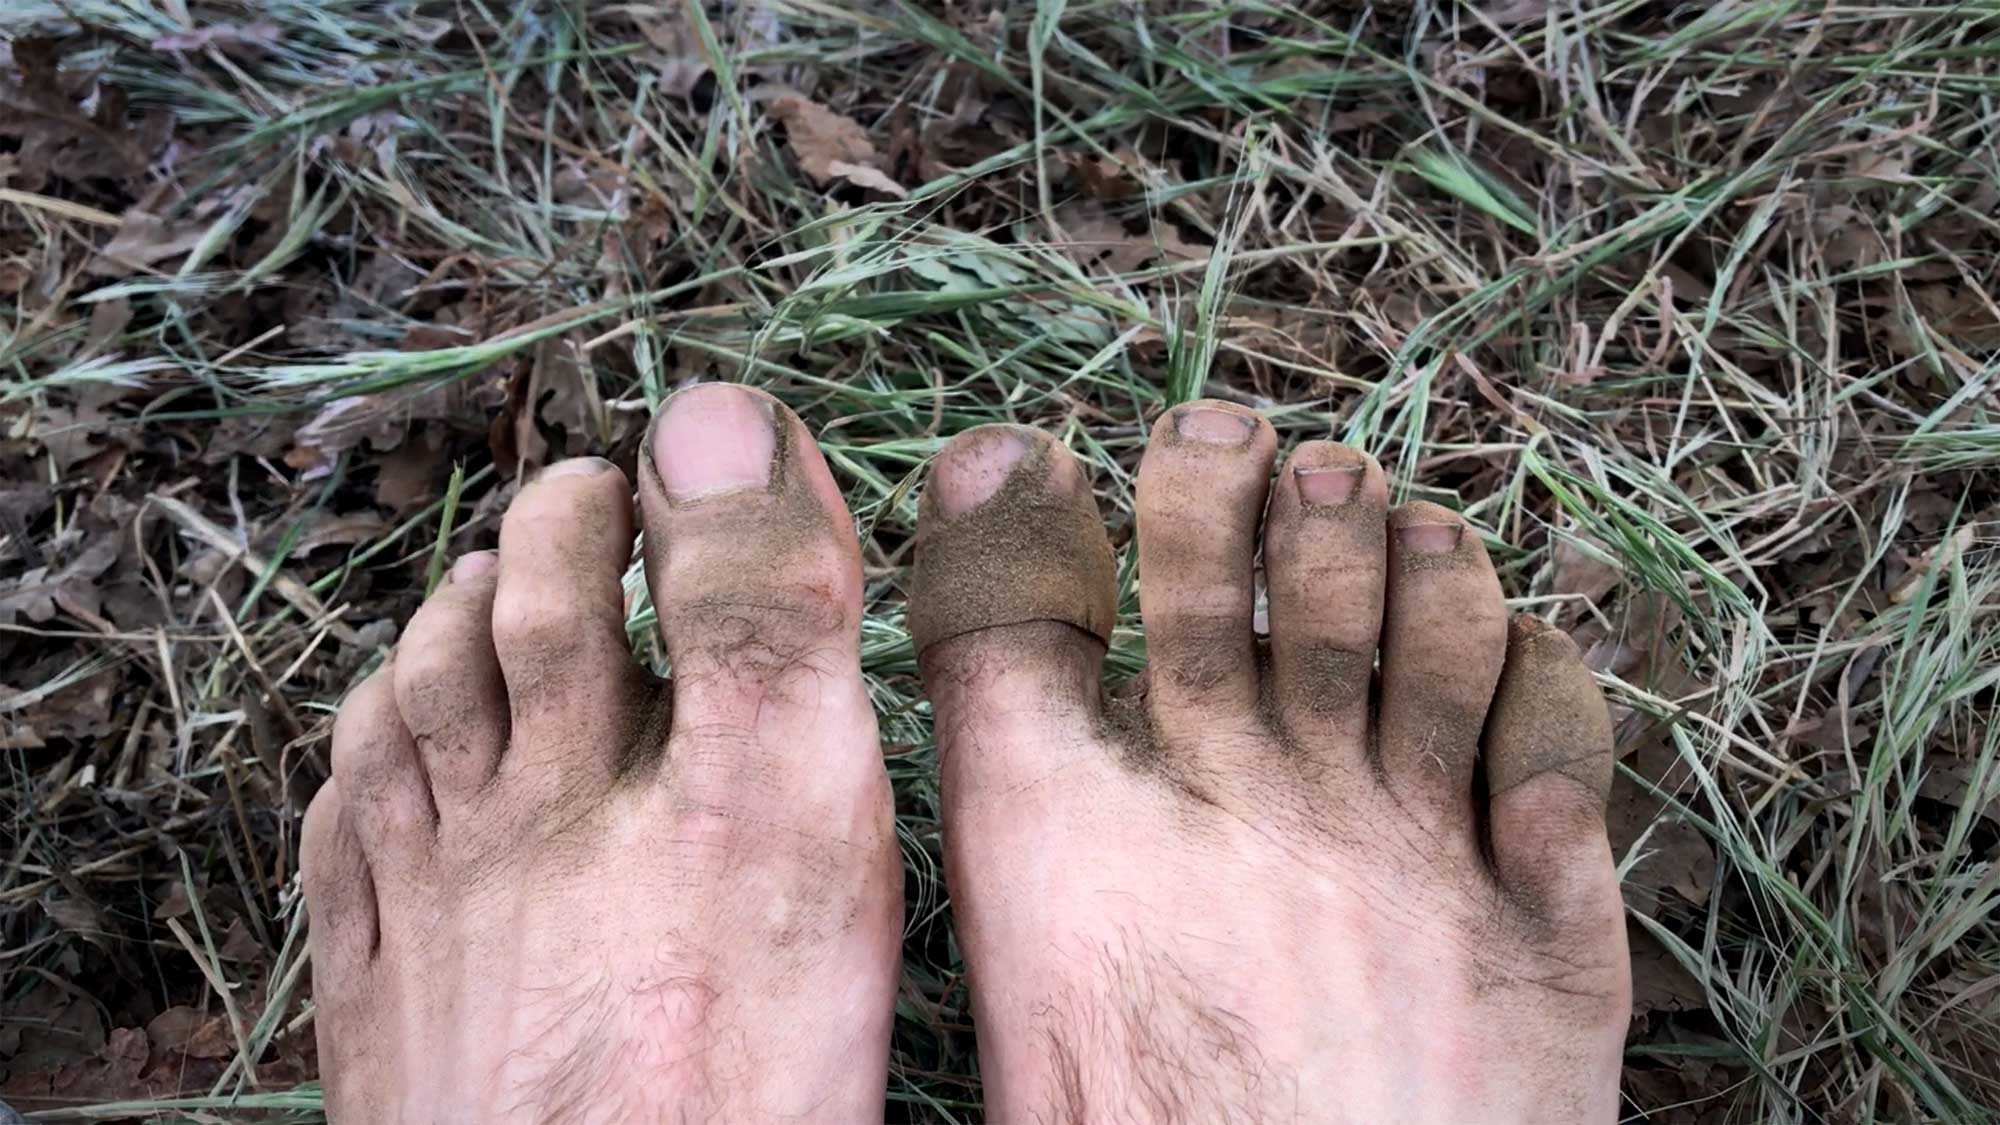 Keeping feet clean can be a never ending task. But it is a battle worth fighting. Frequent cleanings help reduce irritants that create friction and lead to blisters.